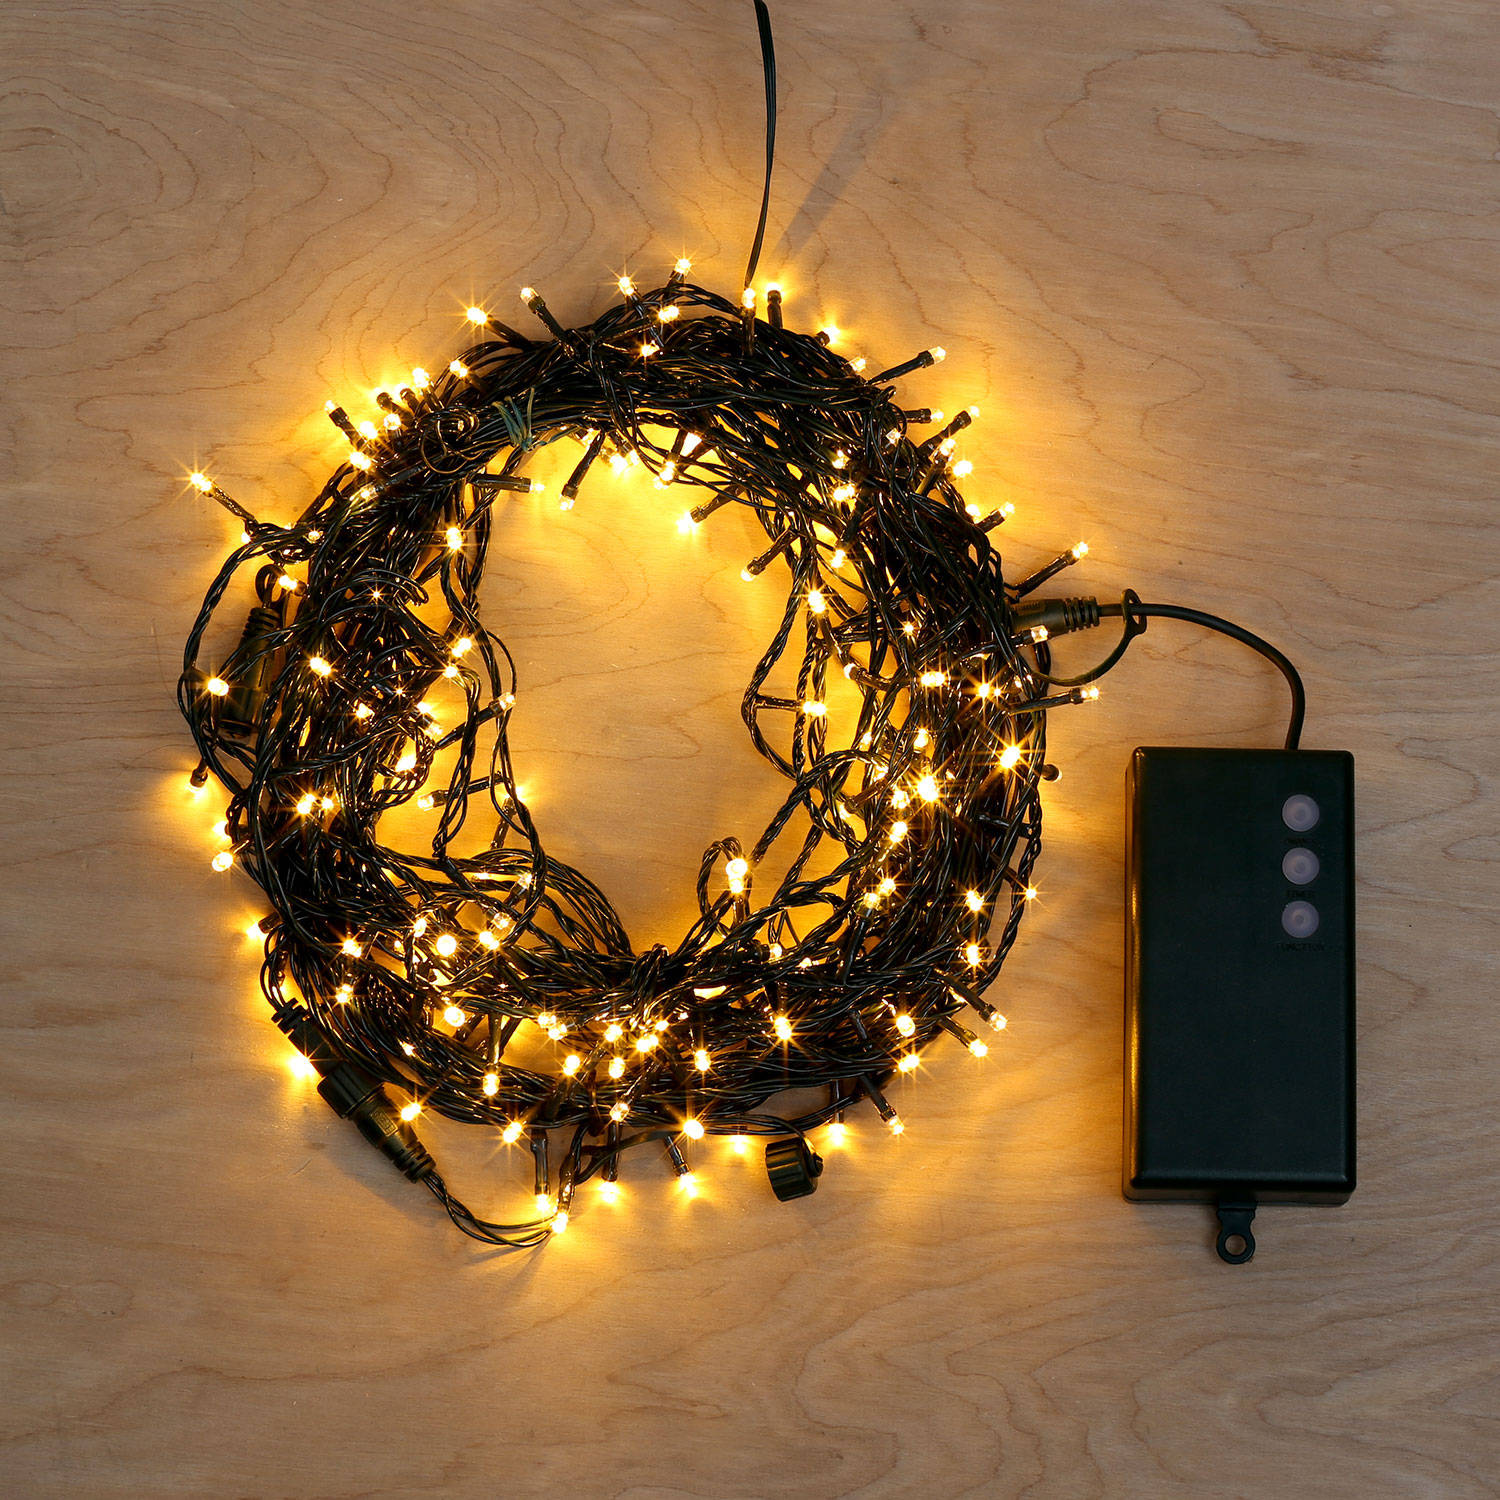 Battery Operated Led String Lights With Timer : Battery Operated Led String Lights With Timer Battery Operated Led Rachael Edwards